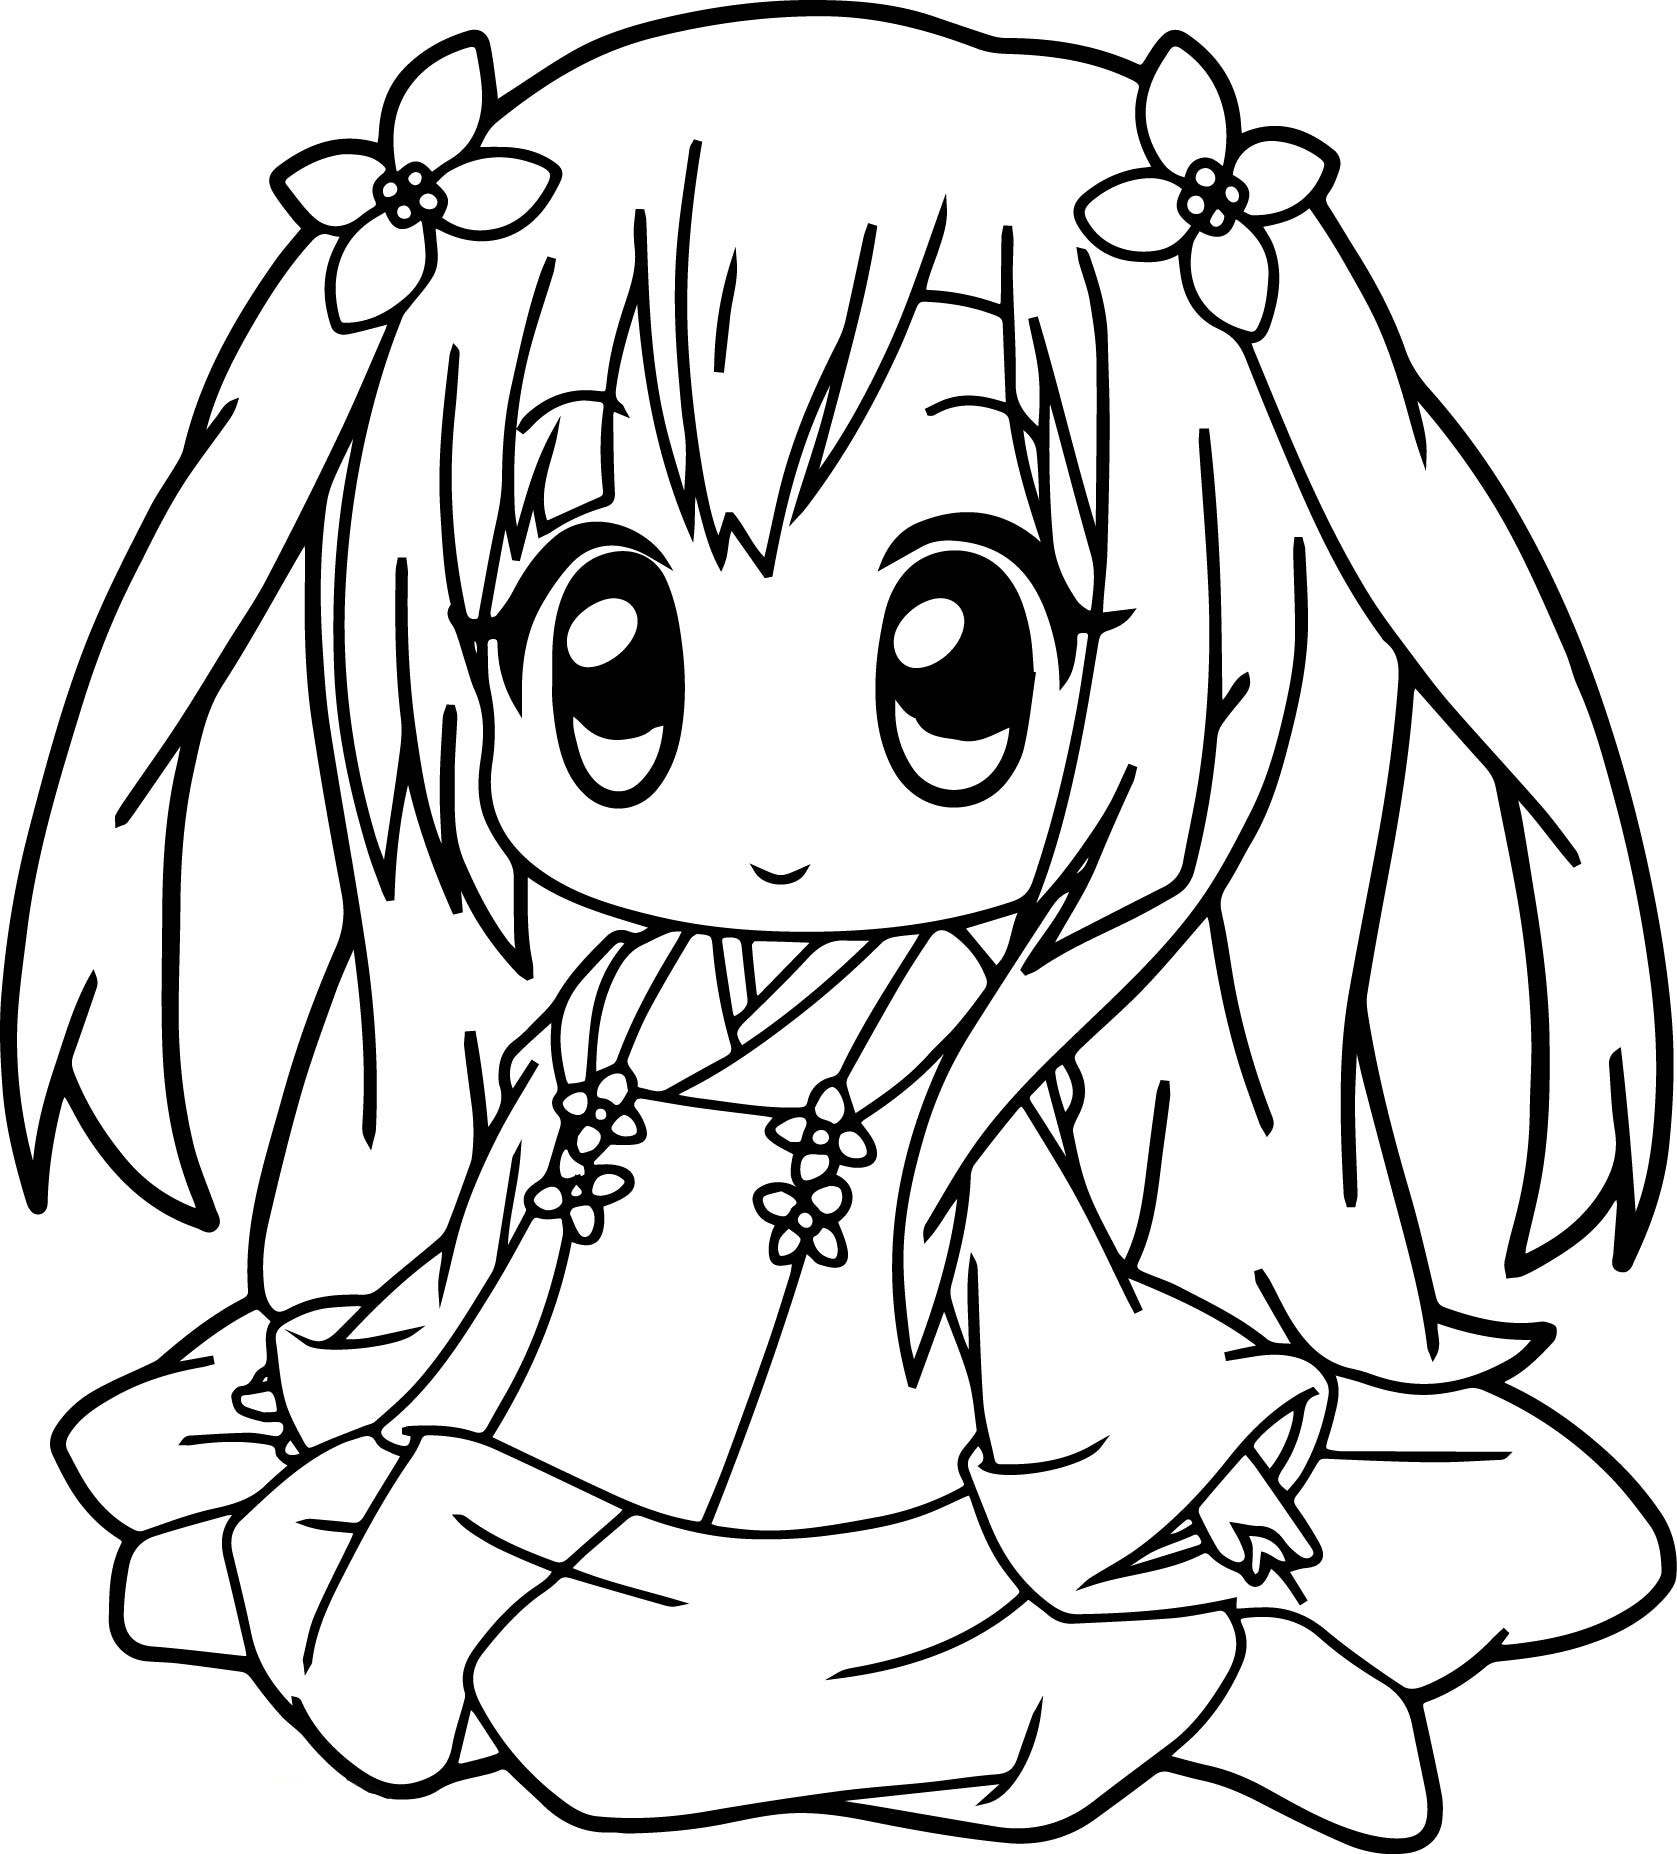 pretty pictures to color coloring pages for girls best coloring pages for kids color pretty pictures to